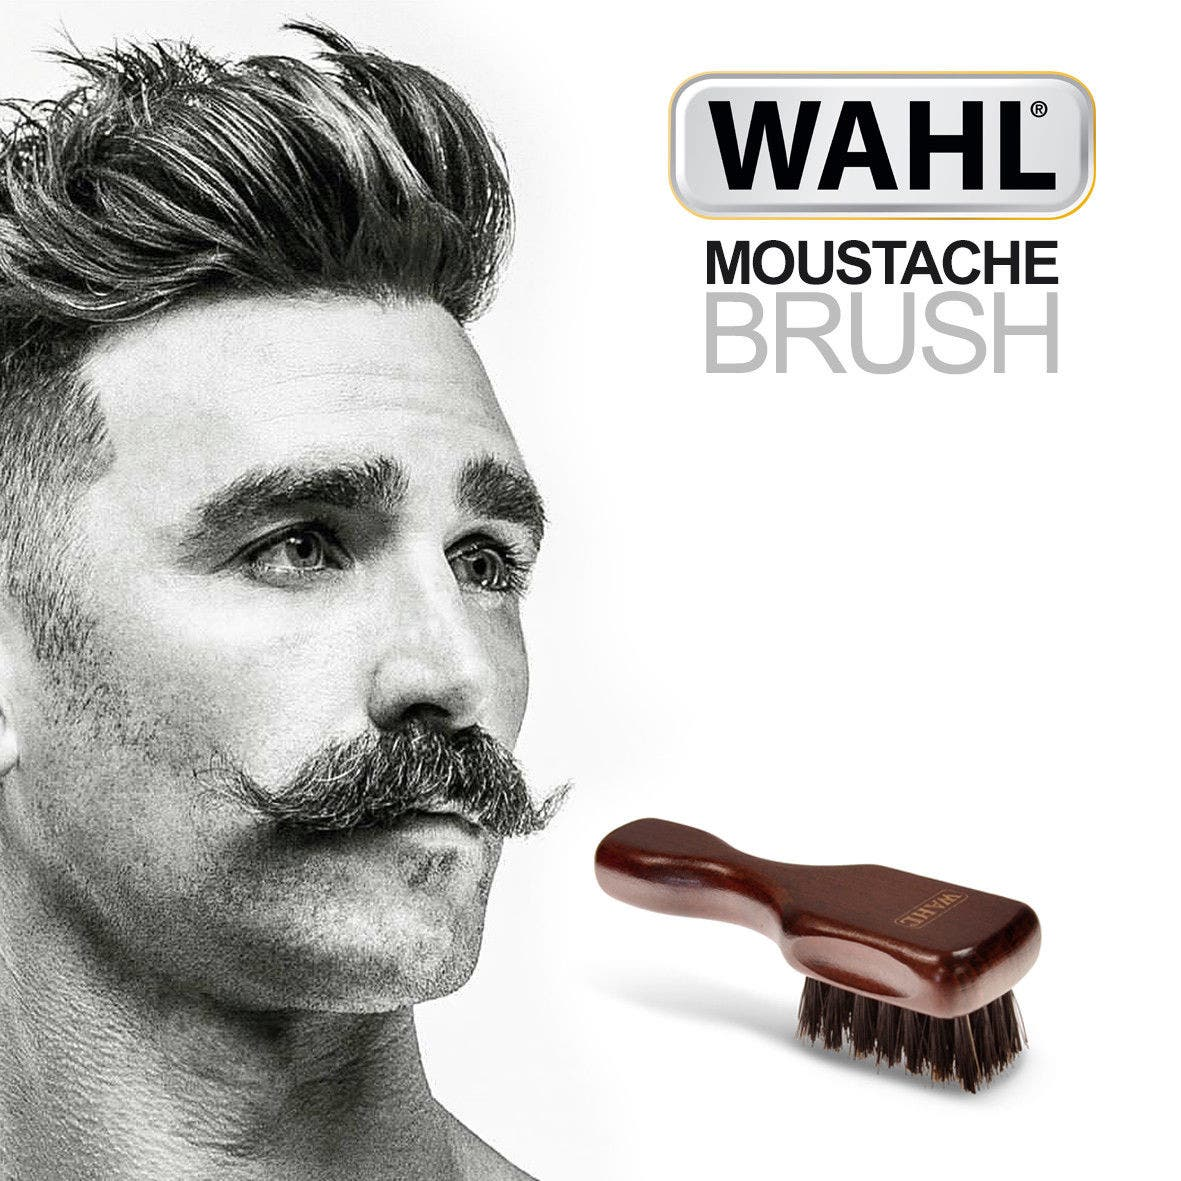 WAHL Pure Natural Bristle Moustache Brush - Mini